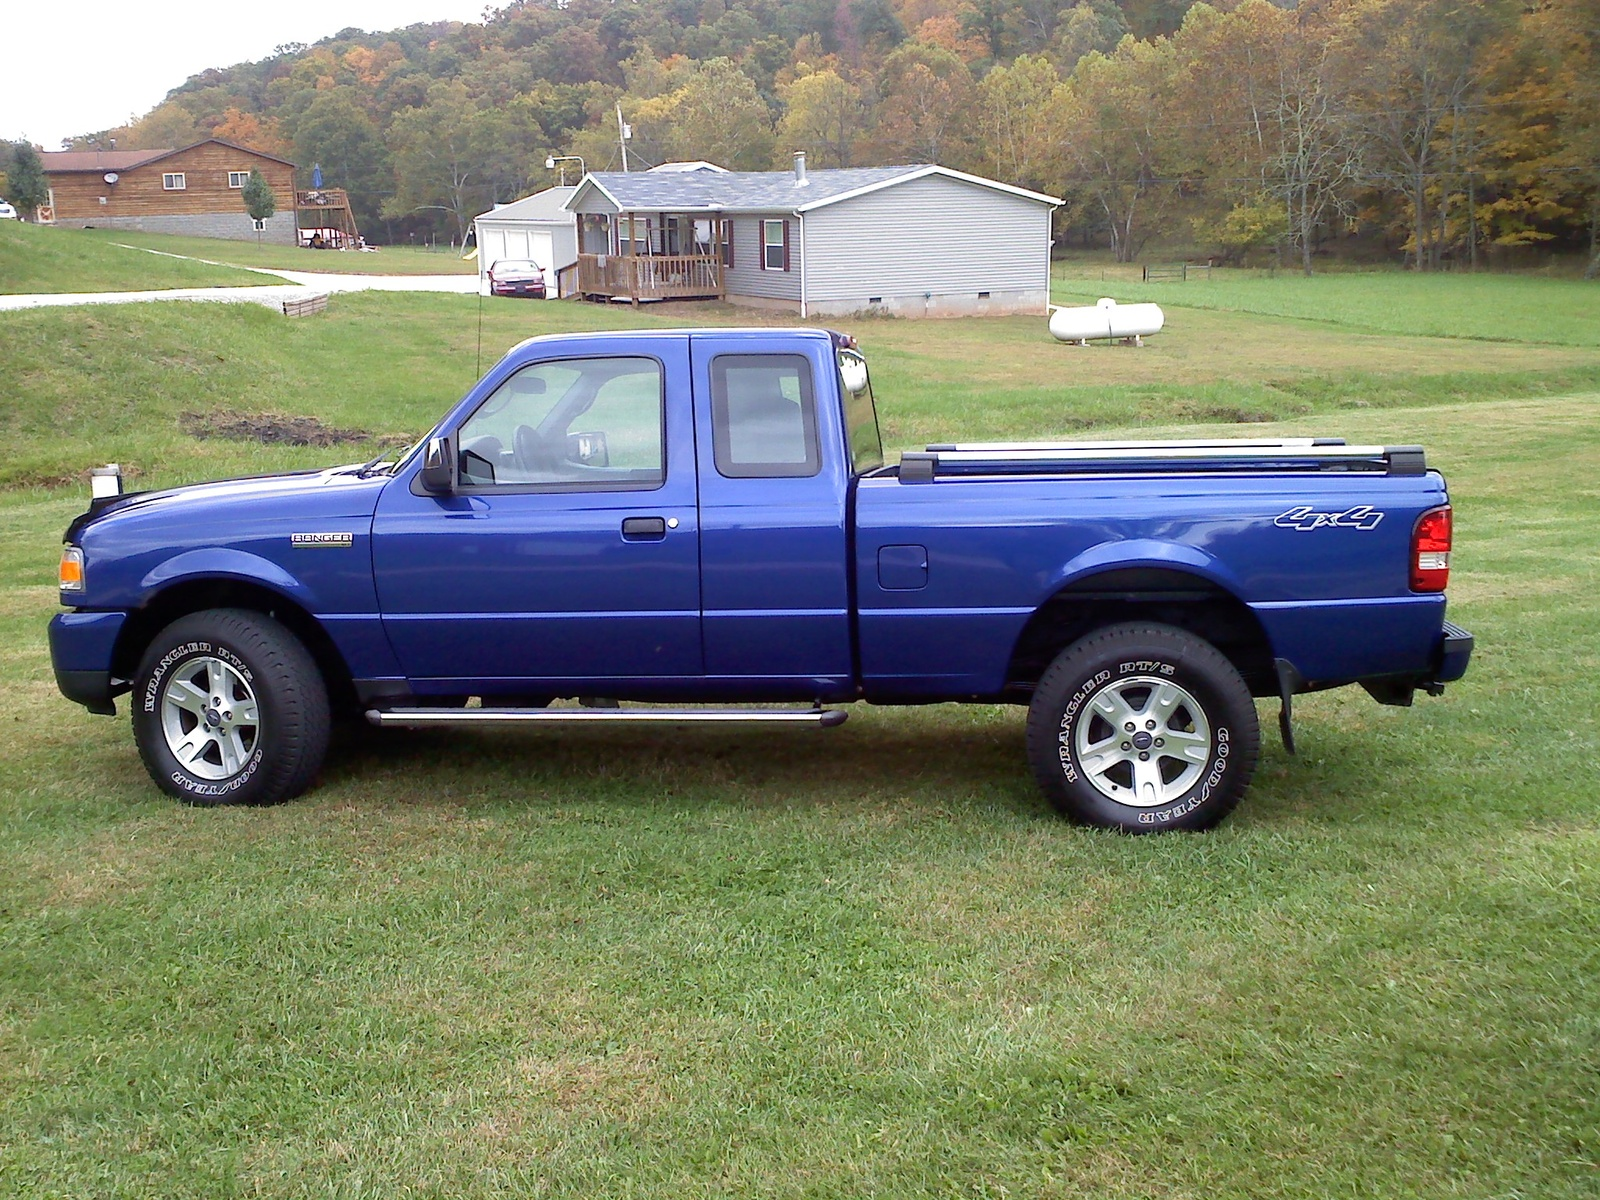 2006 ford ranger pictures cargurus. Black Bedroom Furniture Sets. Home Design Ideas